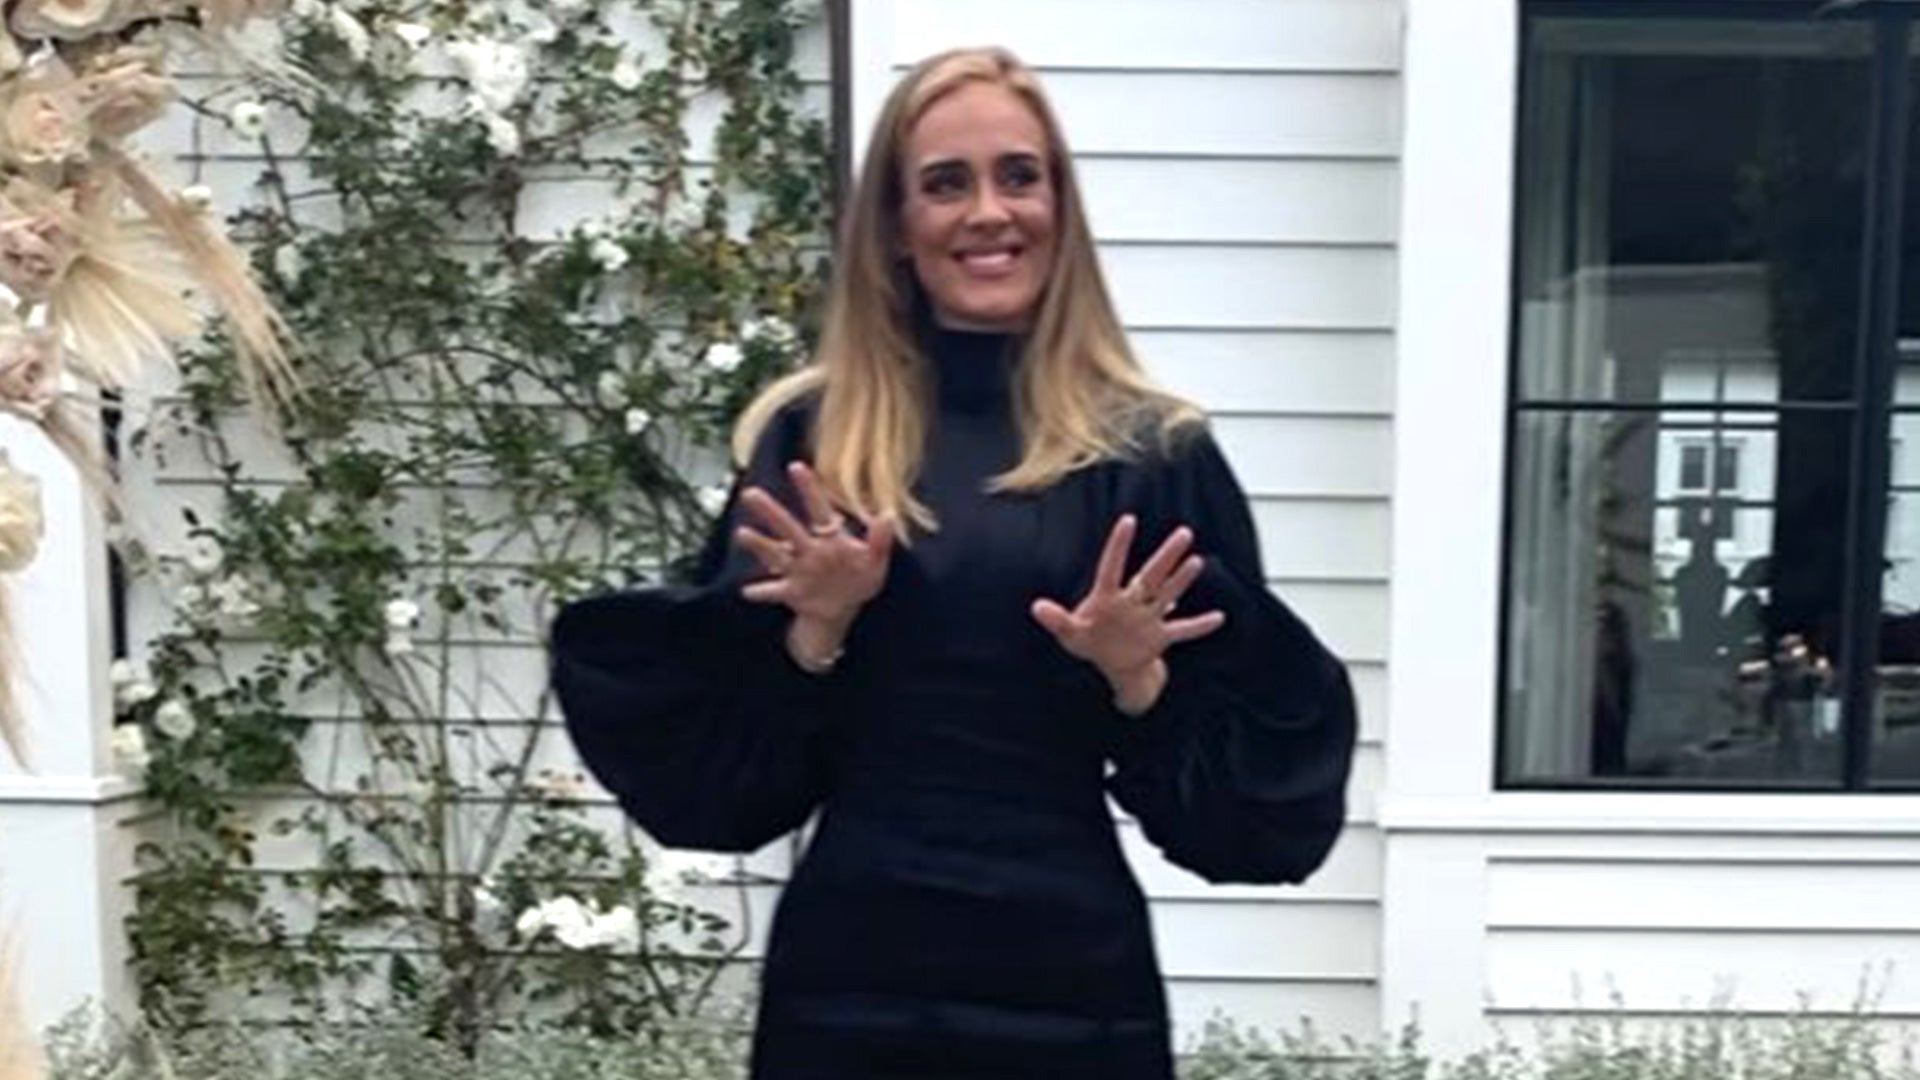 Adele S Former Trainer Responds To Negative Commentary Surrounding Her Health Journey Entertainment Tonight